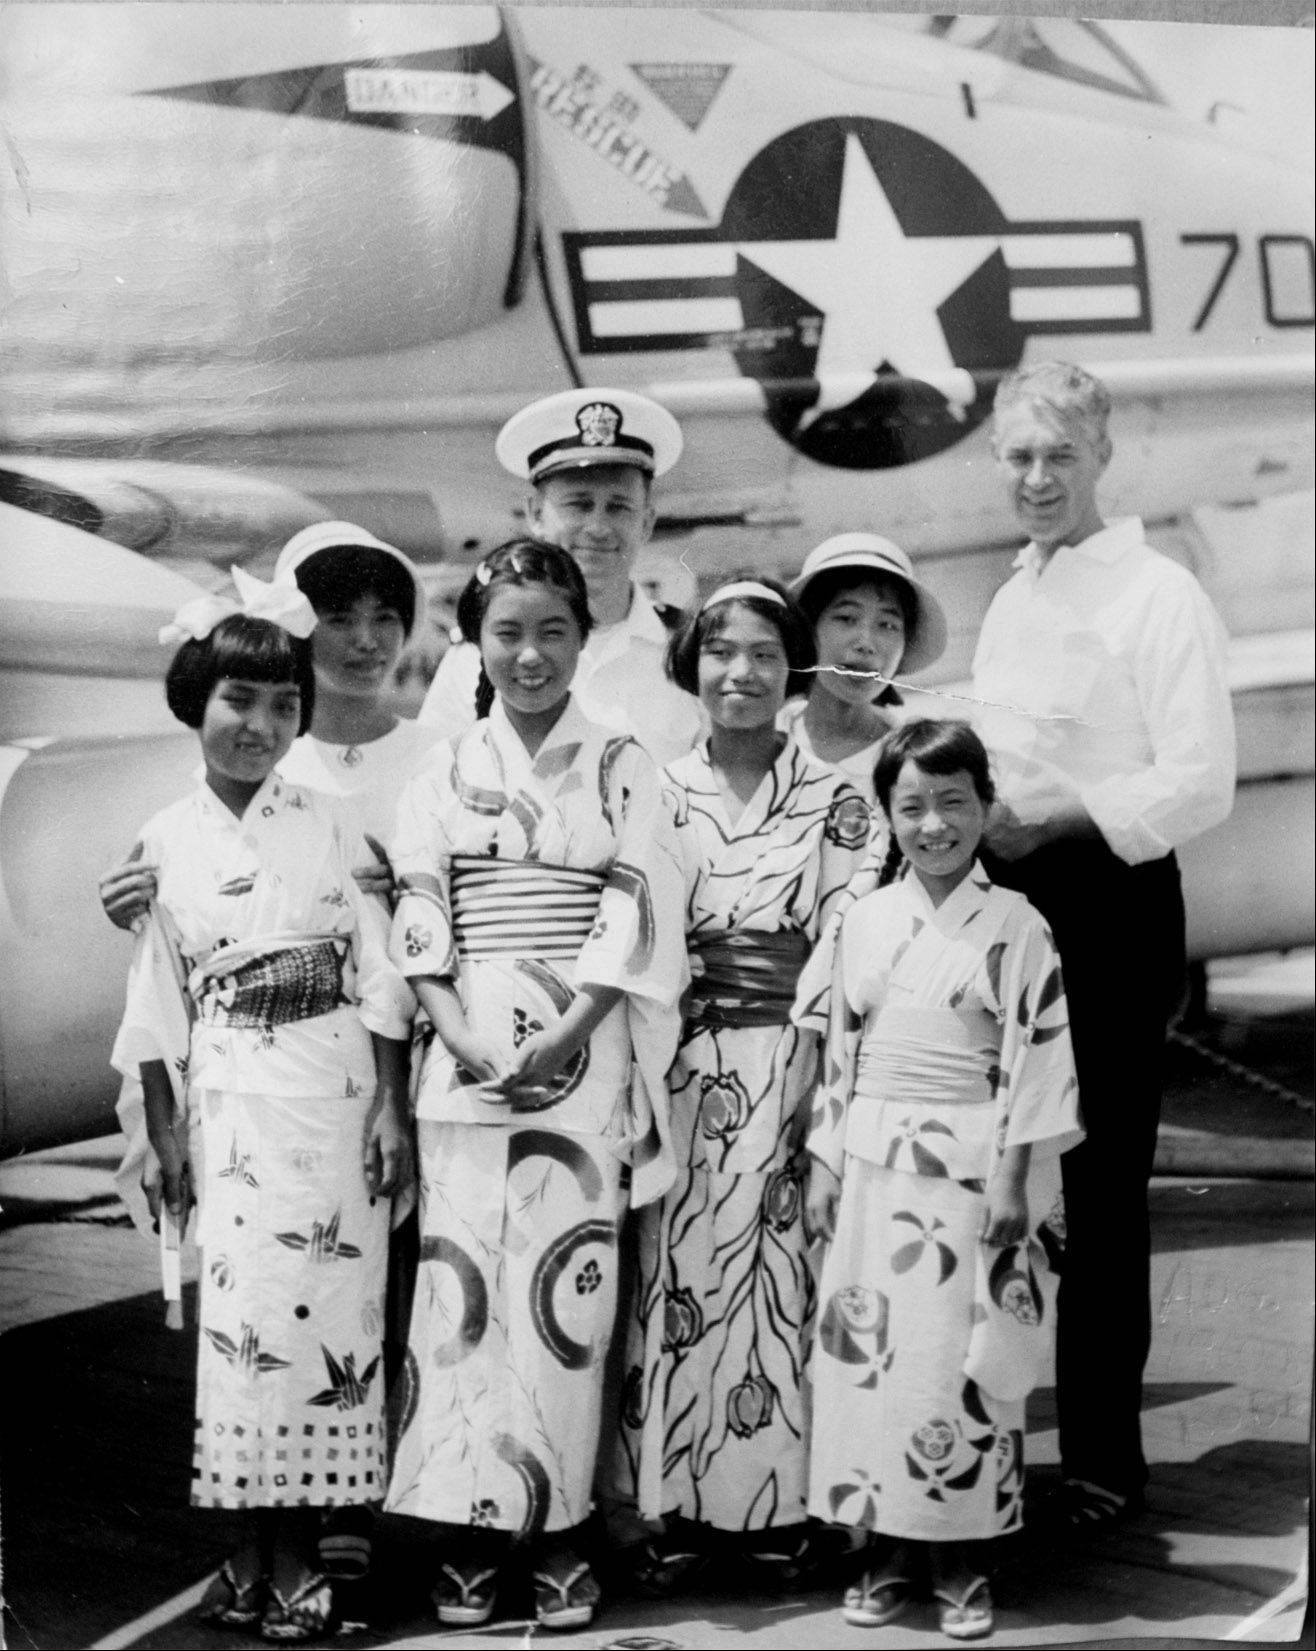 The Rev. Victor Ivers, rear with cap, served 26 years as a Navy chaplain and here poses with schoolchildren in Kobe, Japan, in the early 1960s.